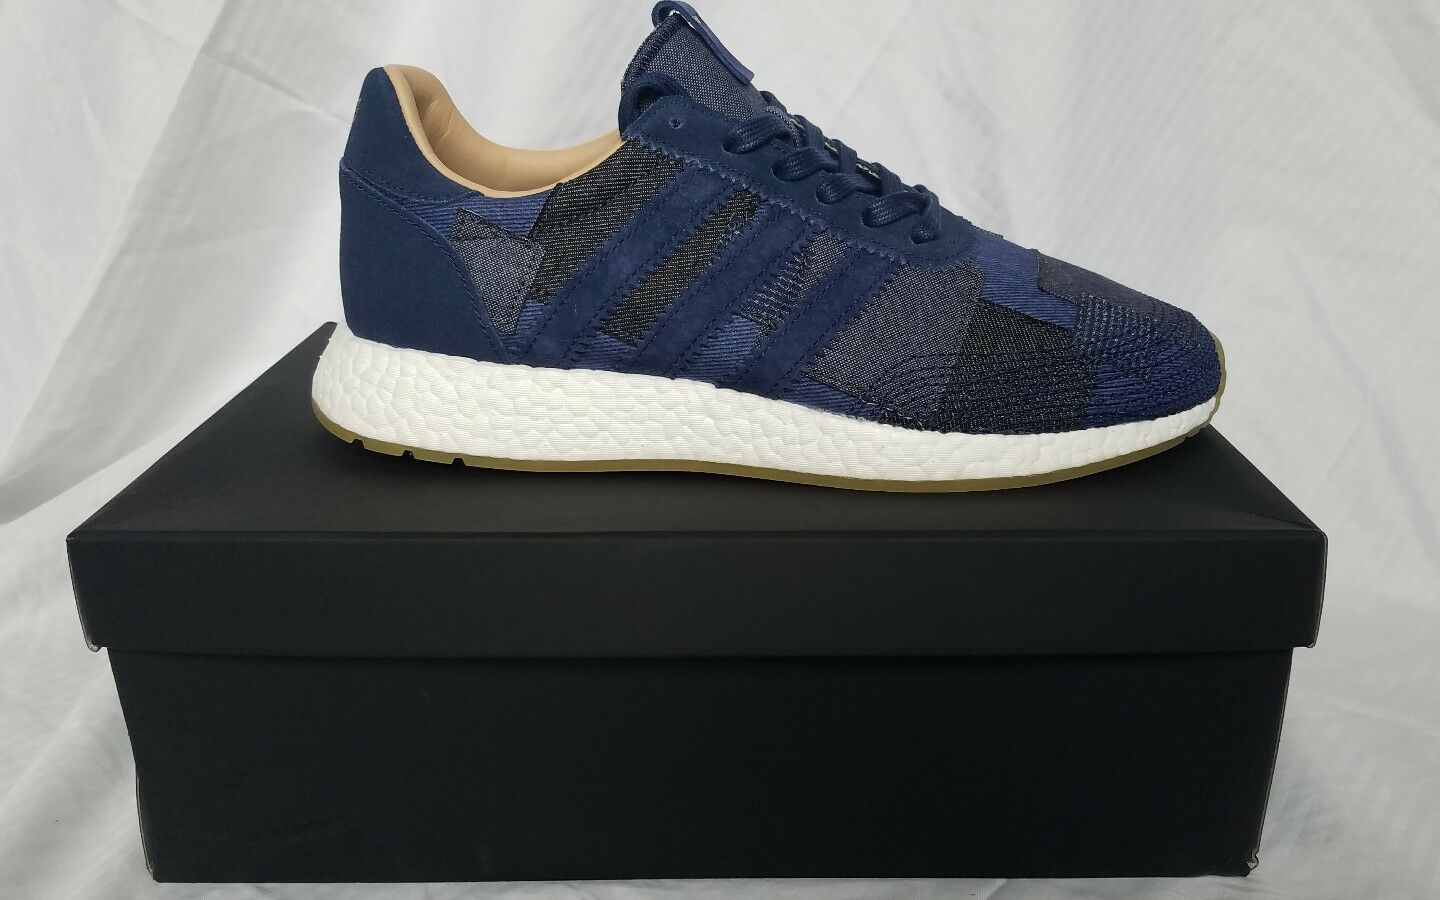 Adidas x End x Bodega Iniki Runner patch bluee Boost Size 9